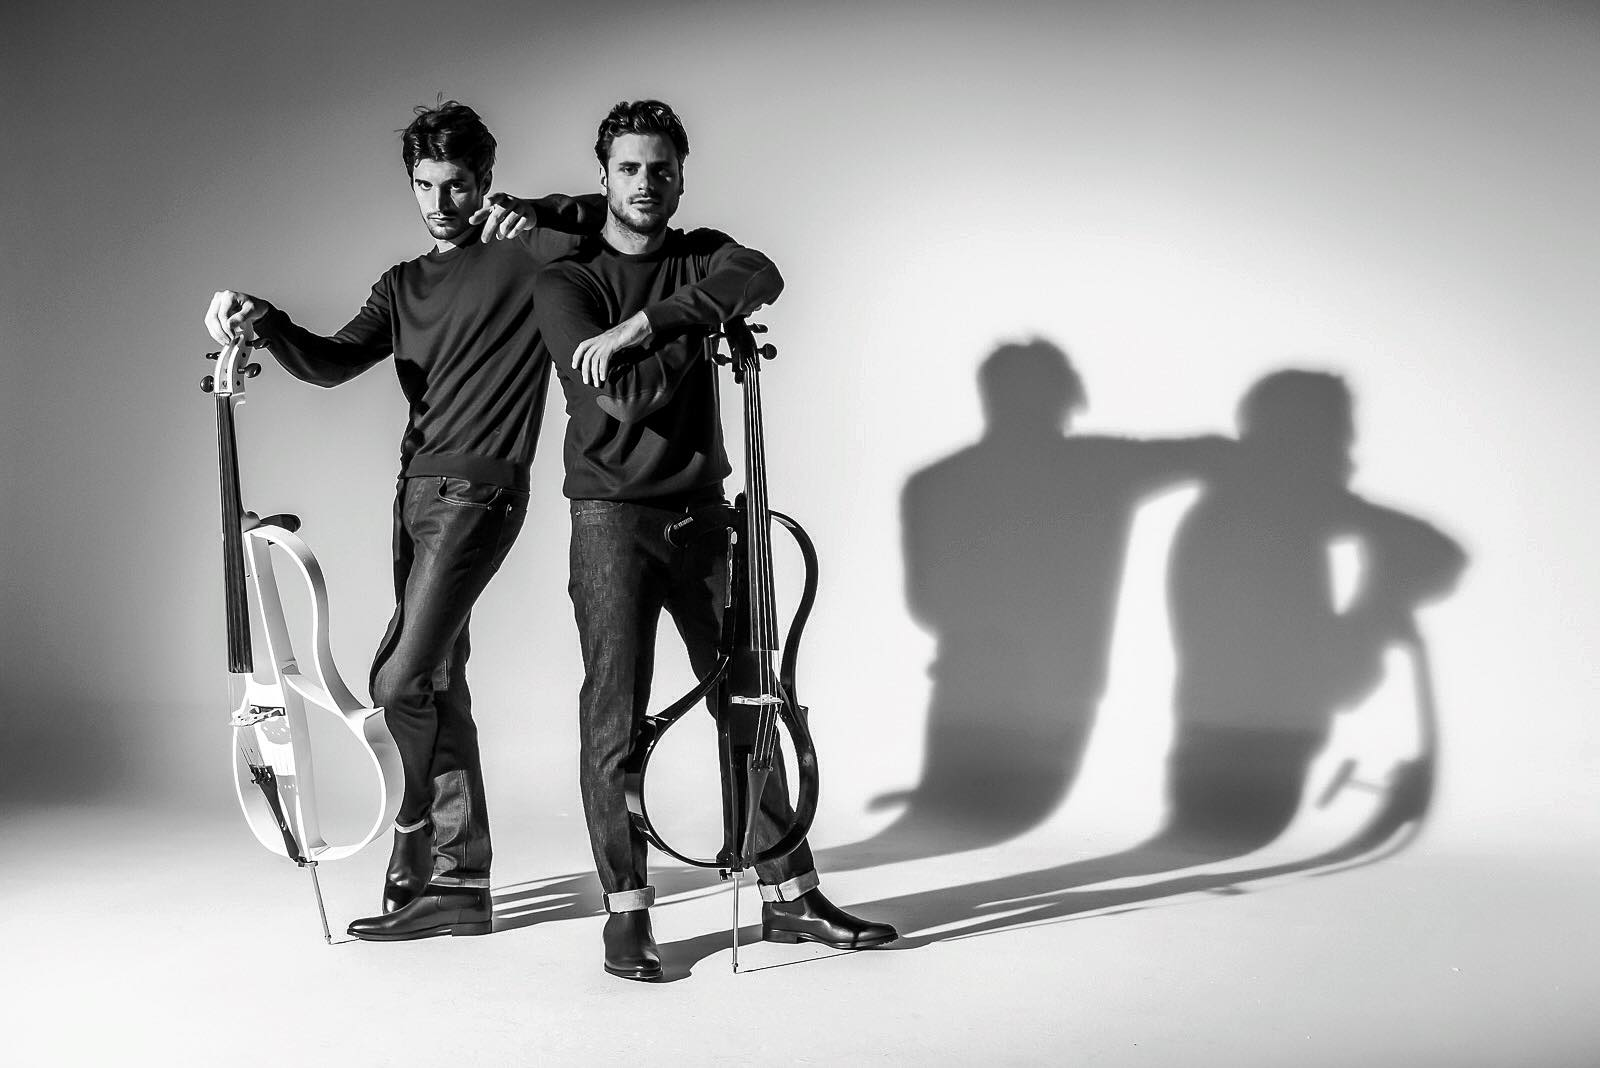 2Cellos: Let There Be Cello Tour presented by Bowery Boston